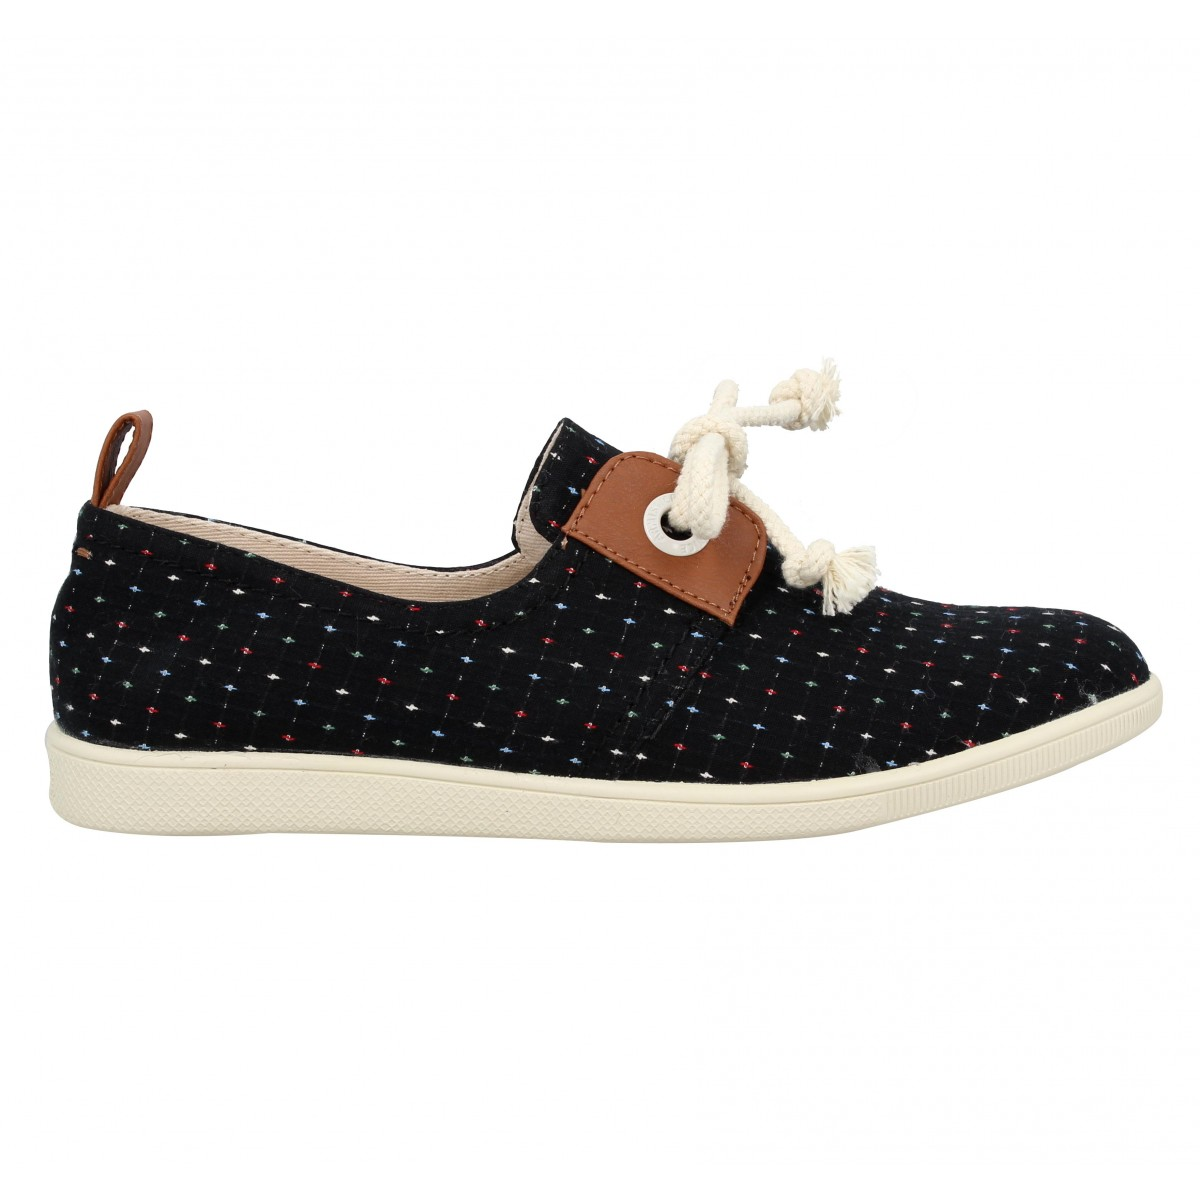 Marque Chaussures Femme Sweet Chaussures Femme Marque Sweet Nwy80Ovmn